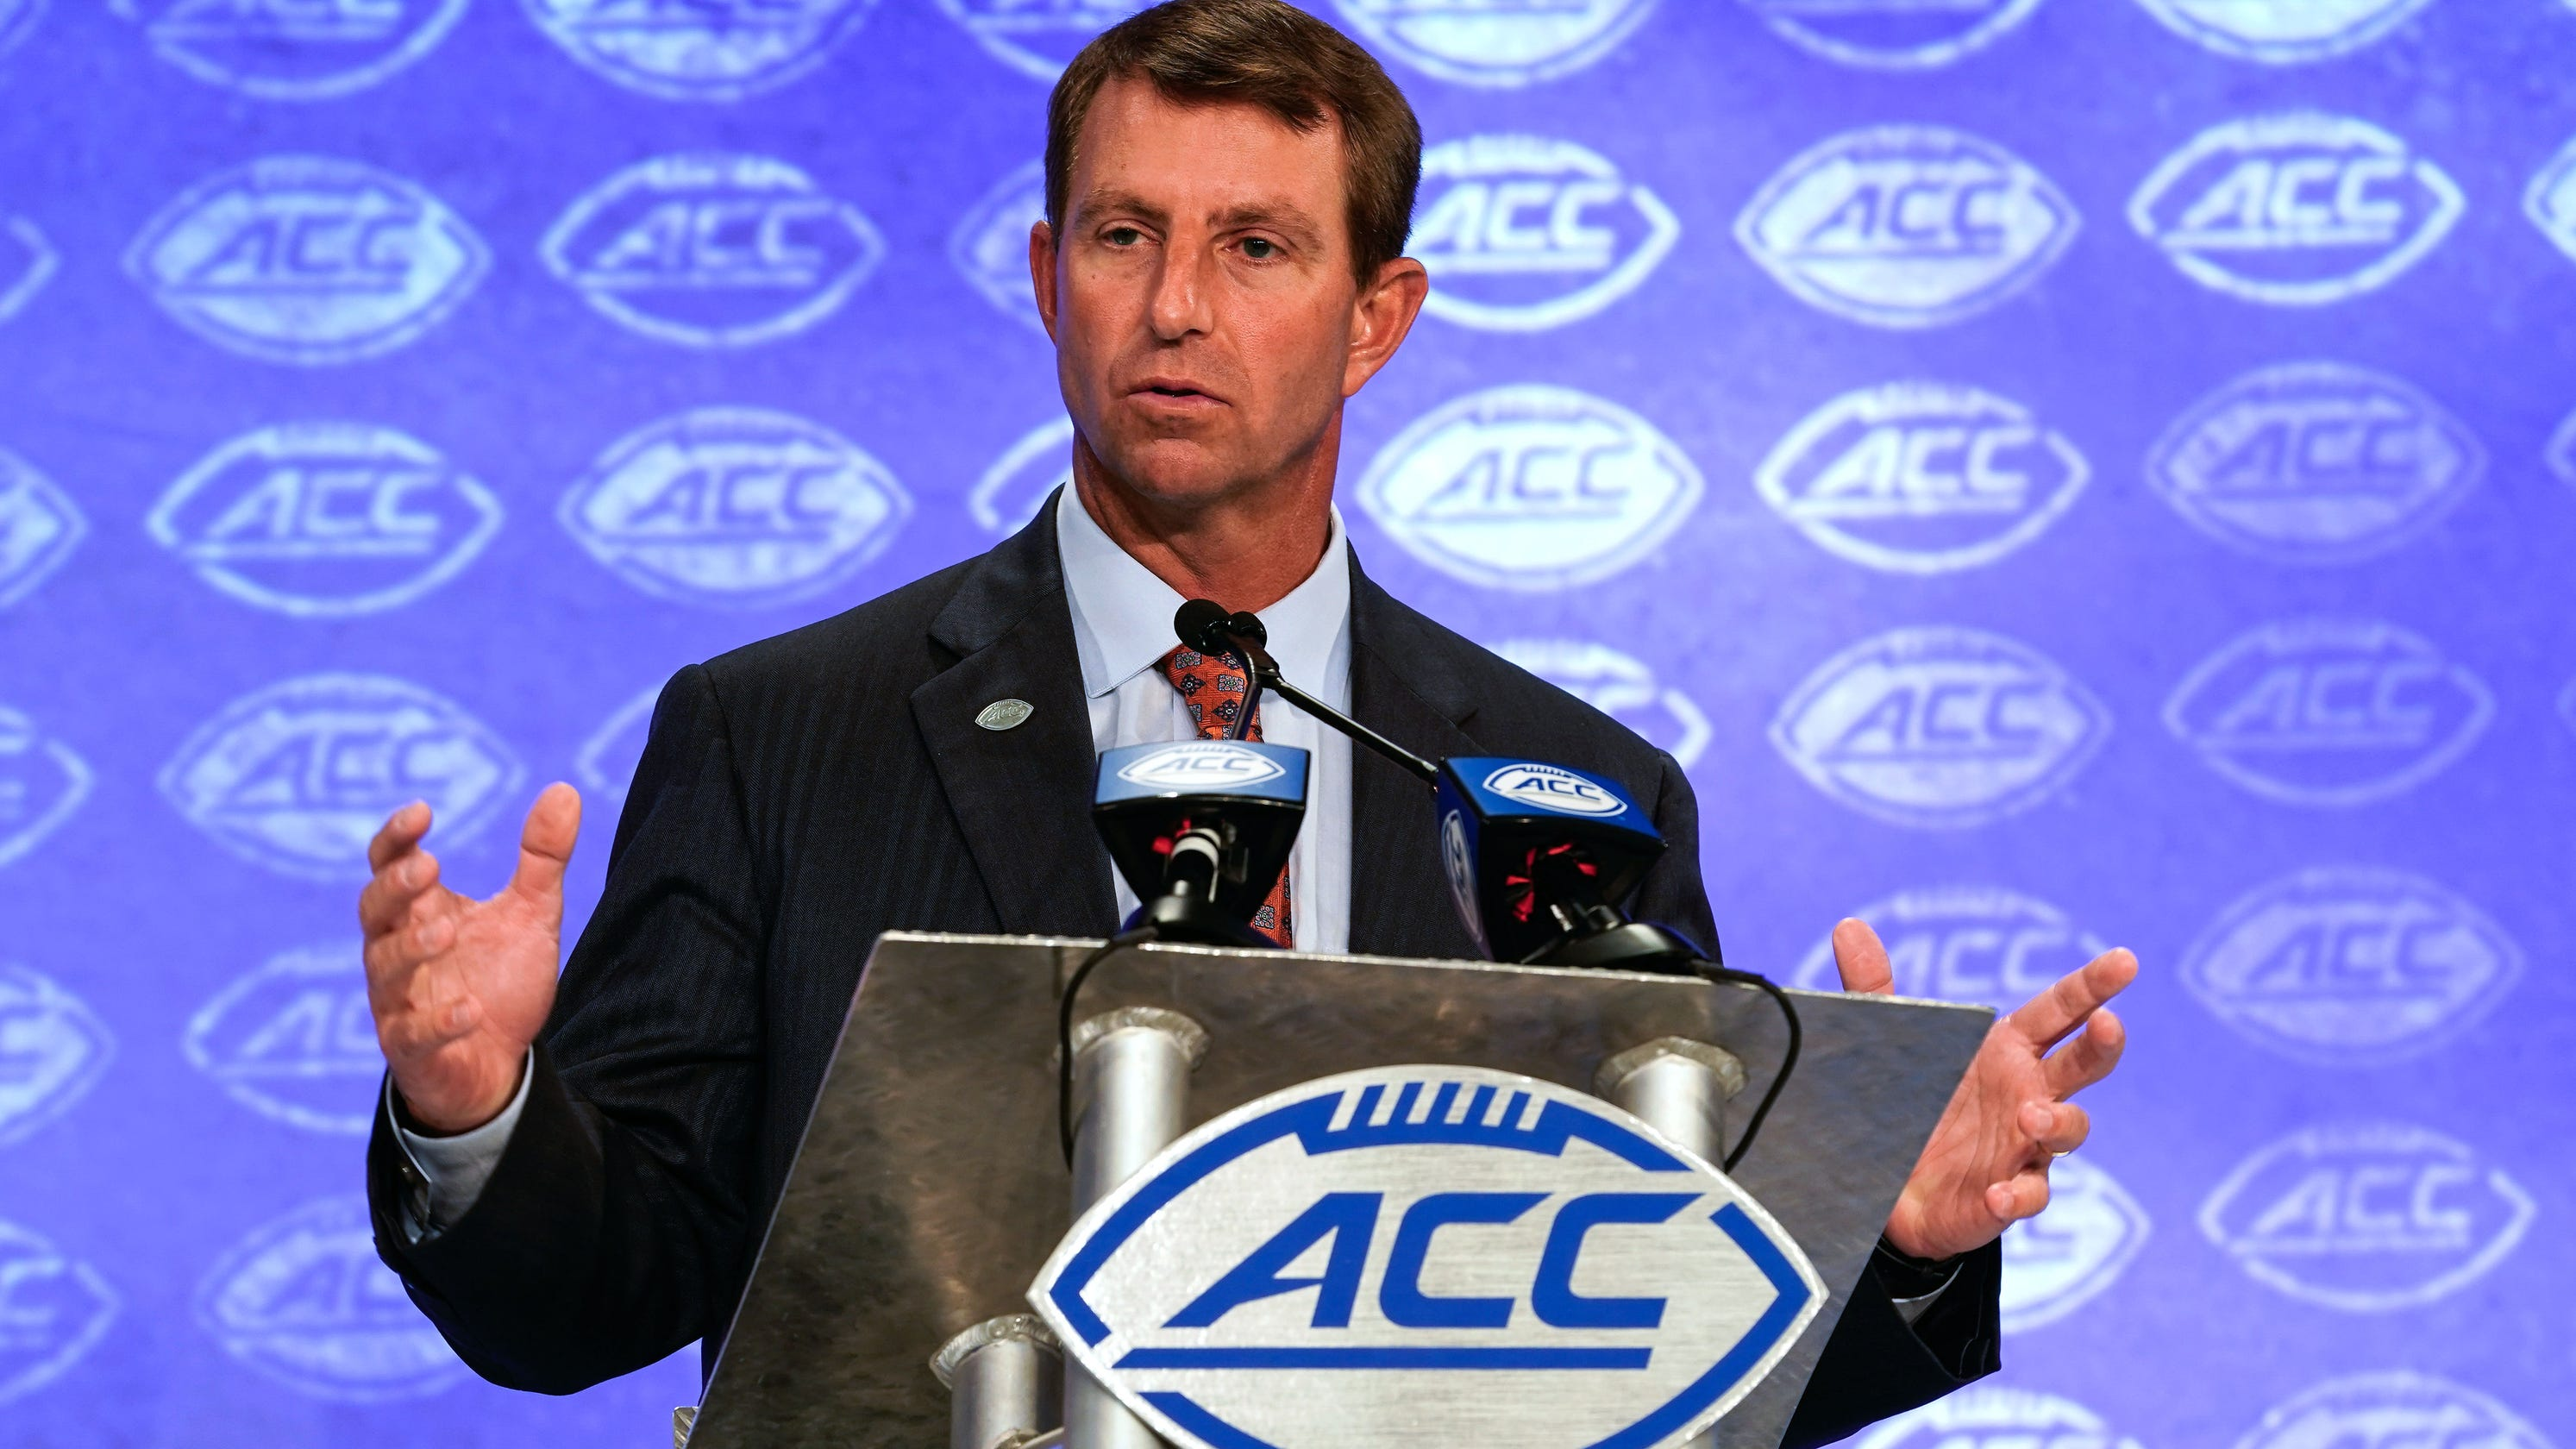 Opinion: Clemson, not Alabama, now face of college football as it aims for national title repeat